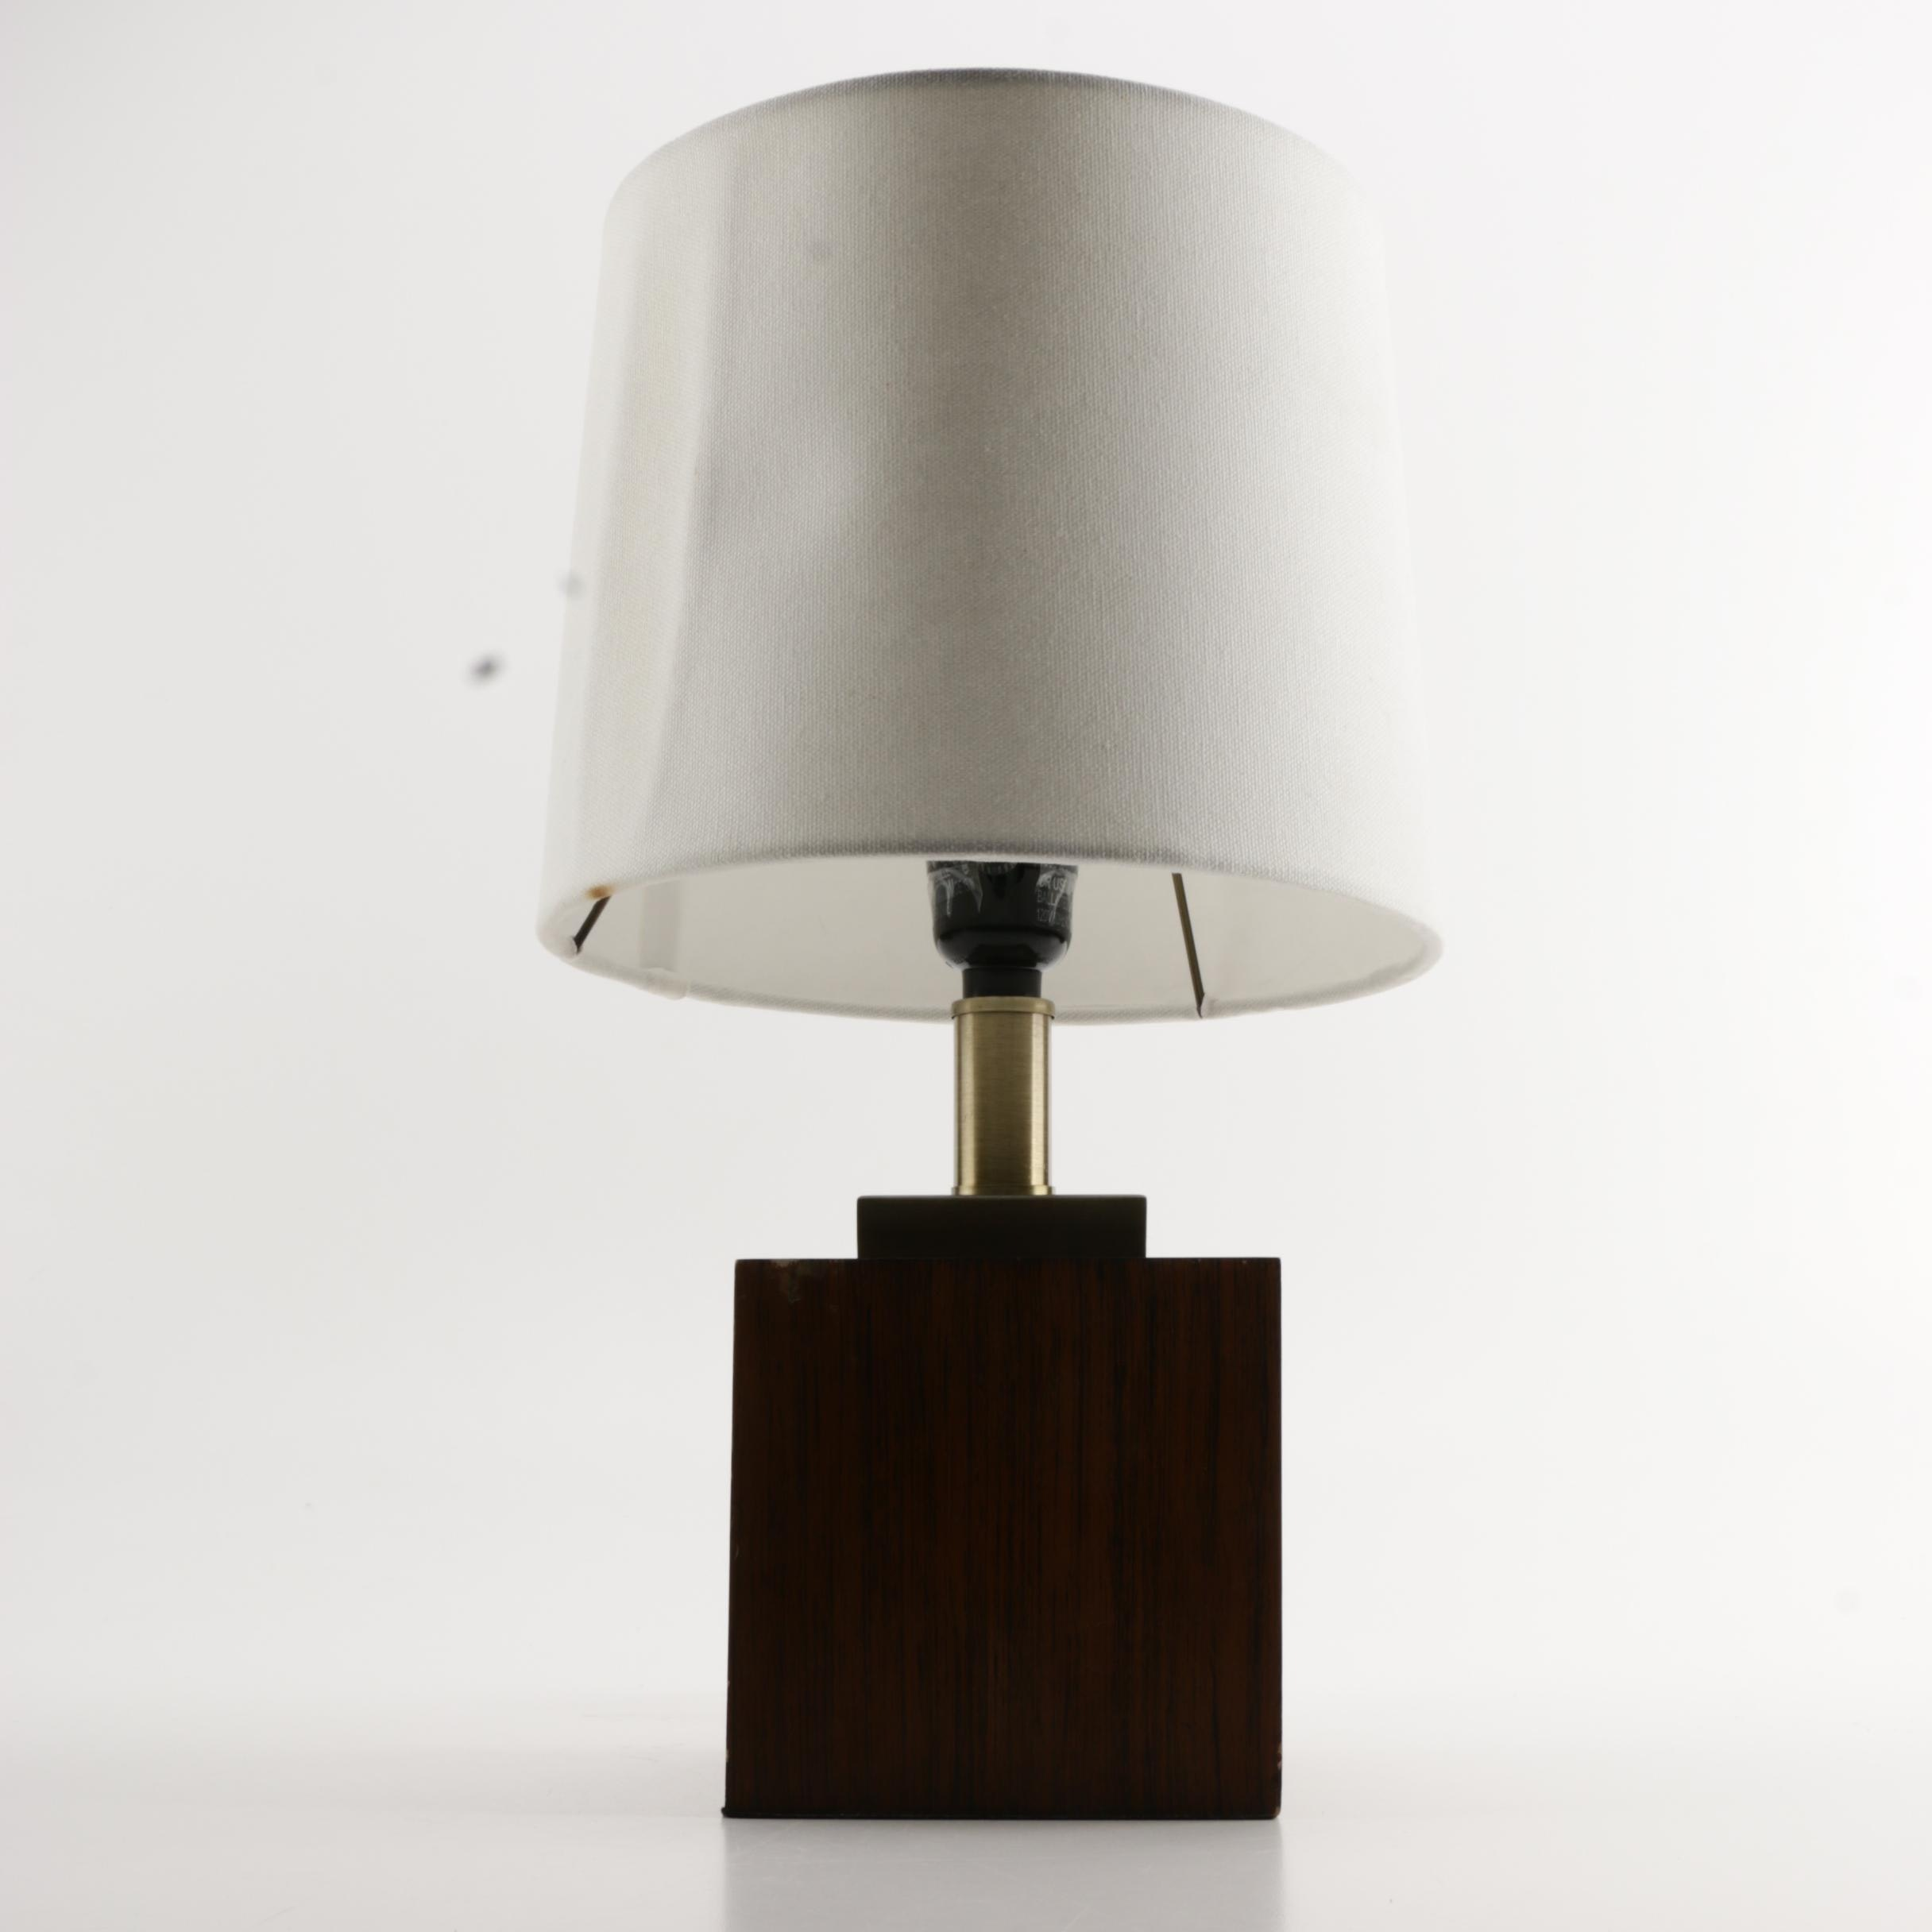 Contemporary Wood and Brass Table Lamp